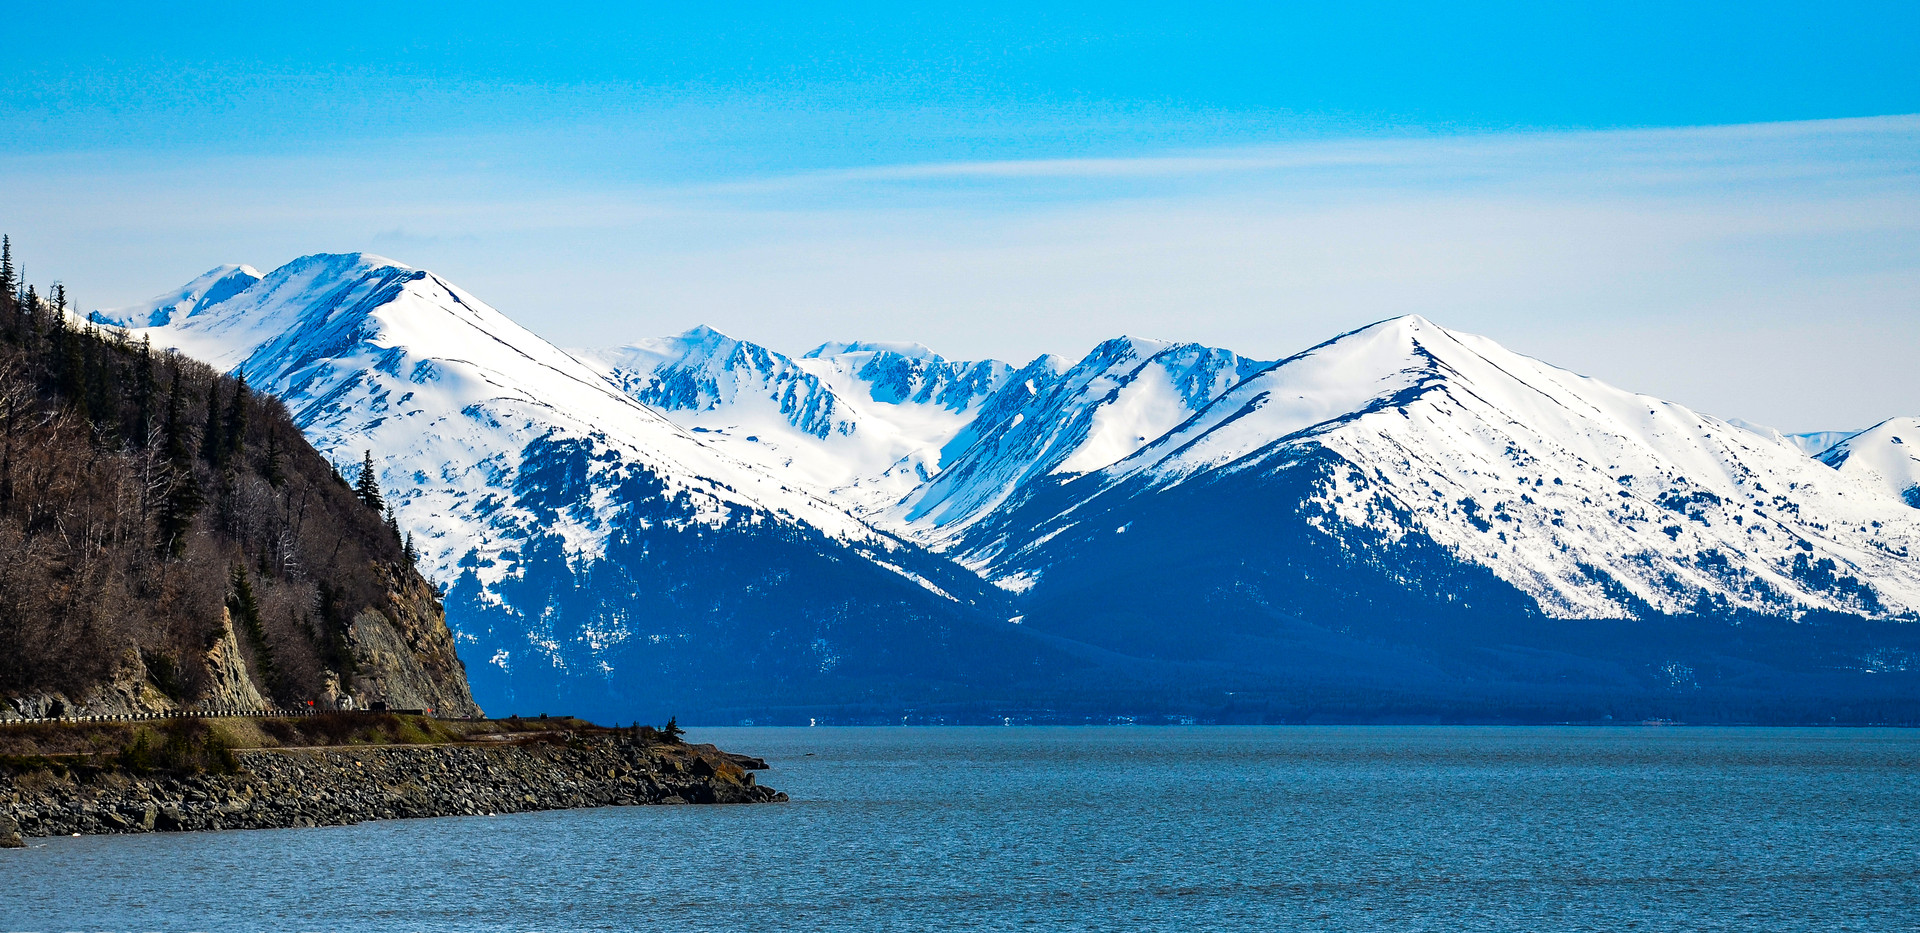 Kenai Peninsula and Turnagain Arm, Alaska